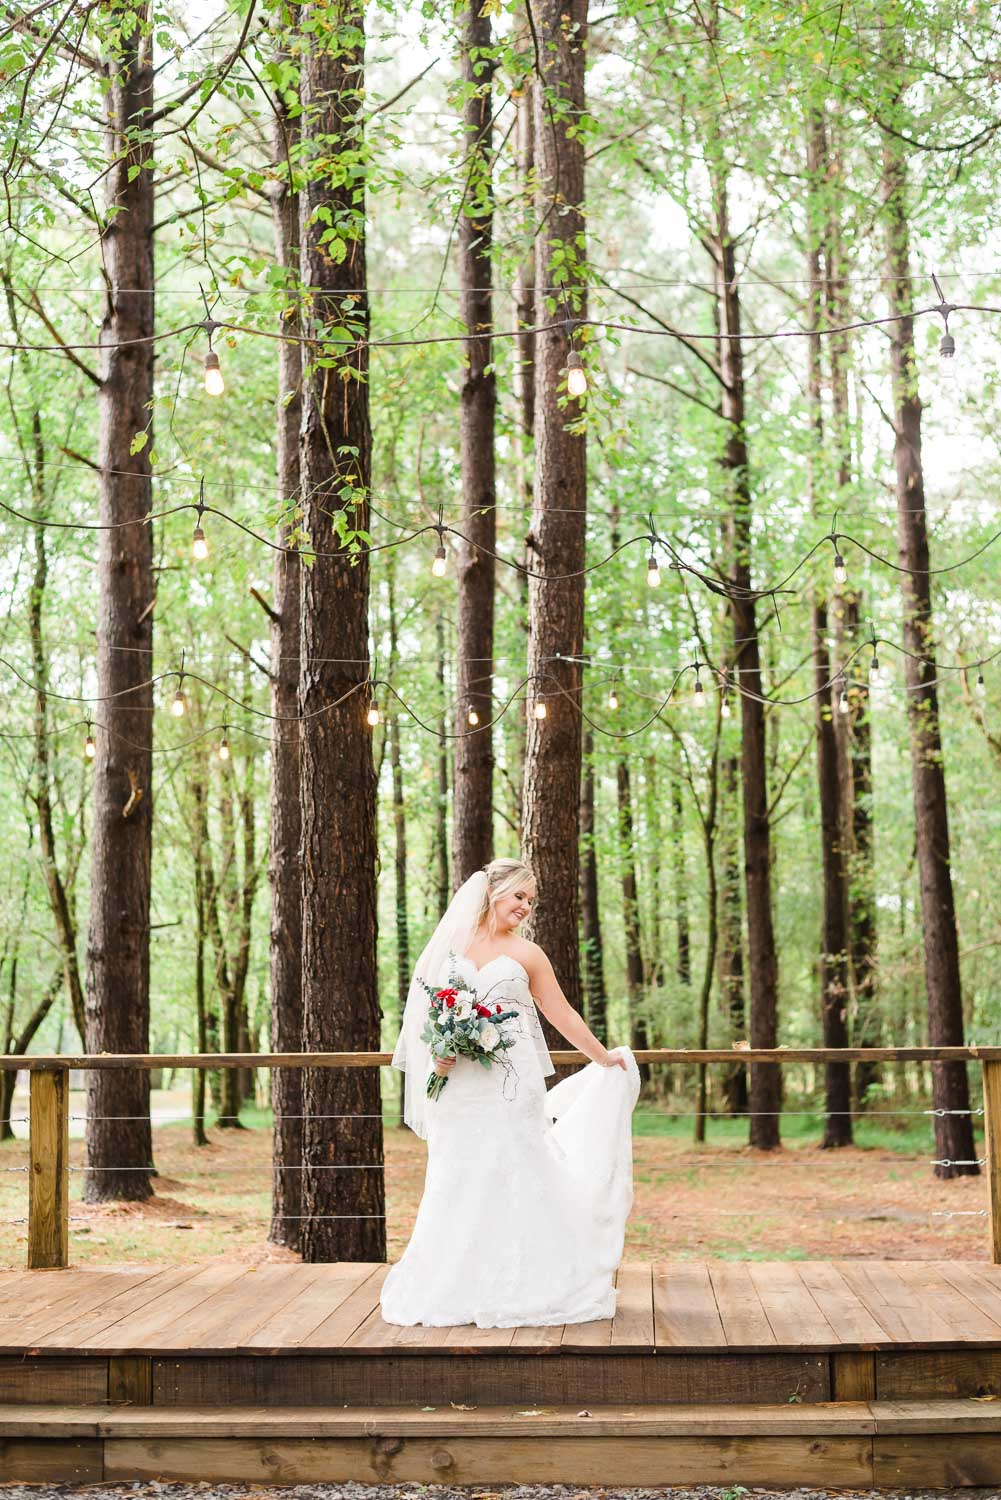 just the bride out dancing on the Forest Ceremony stage at Hiwassee River Weddings.